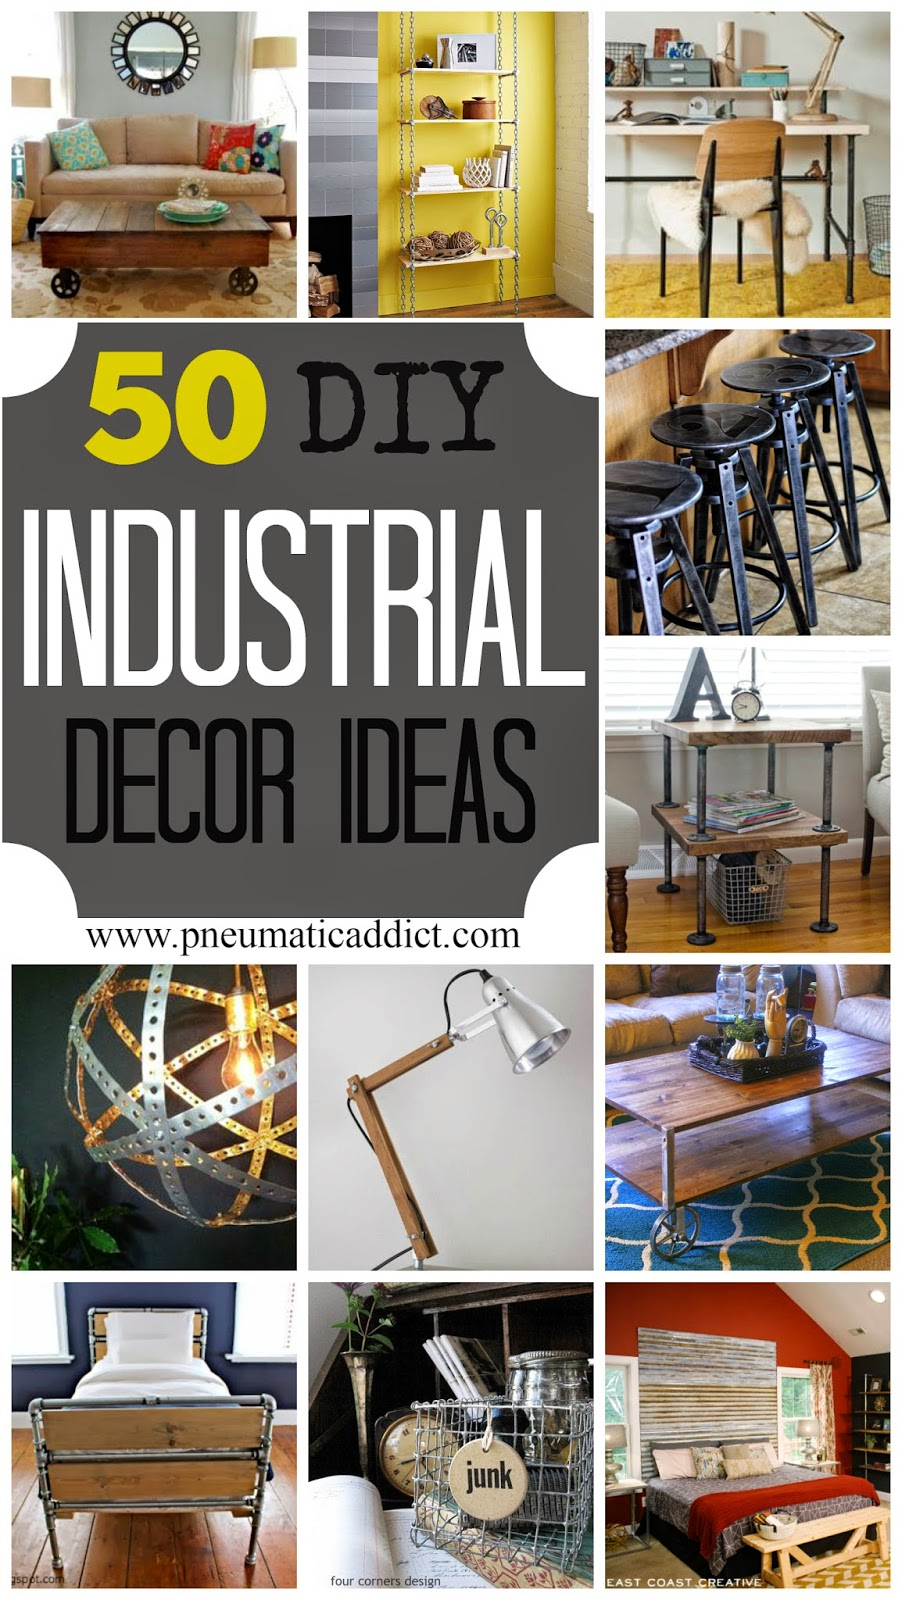 DIY industrial decor ideas